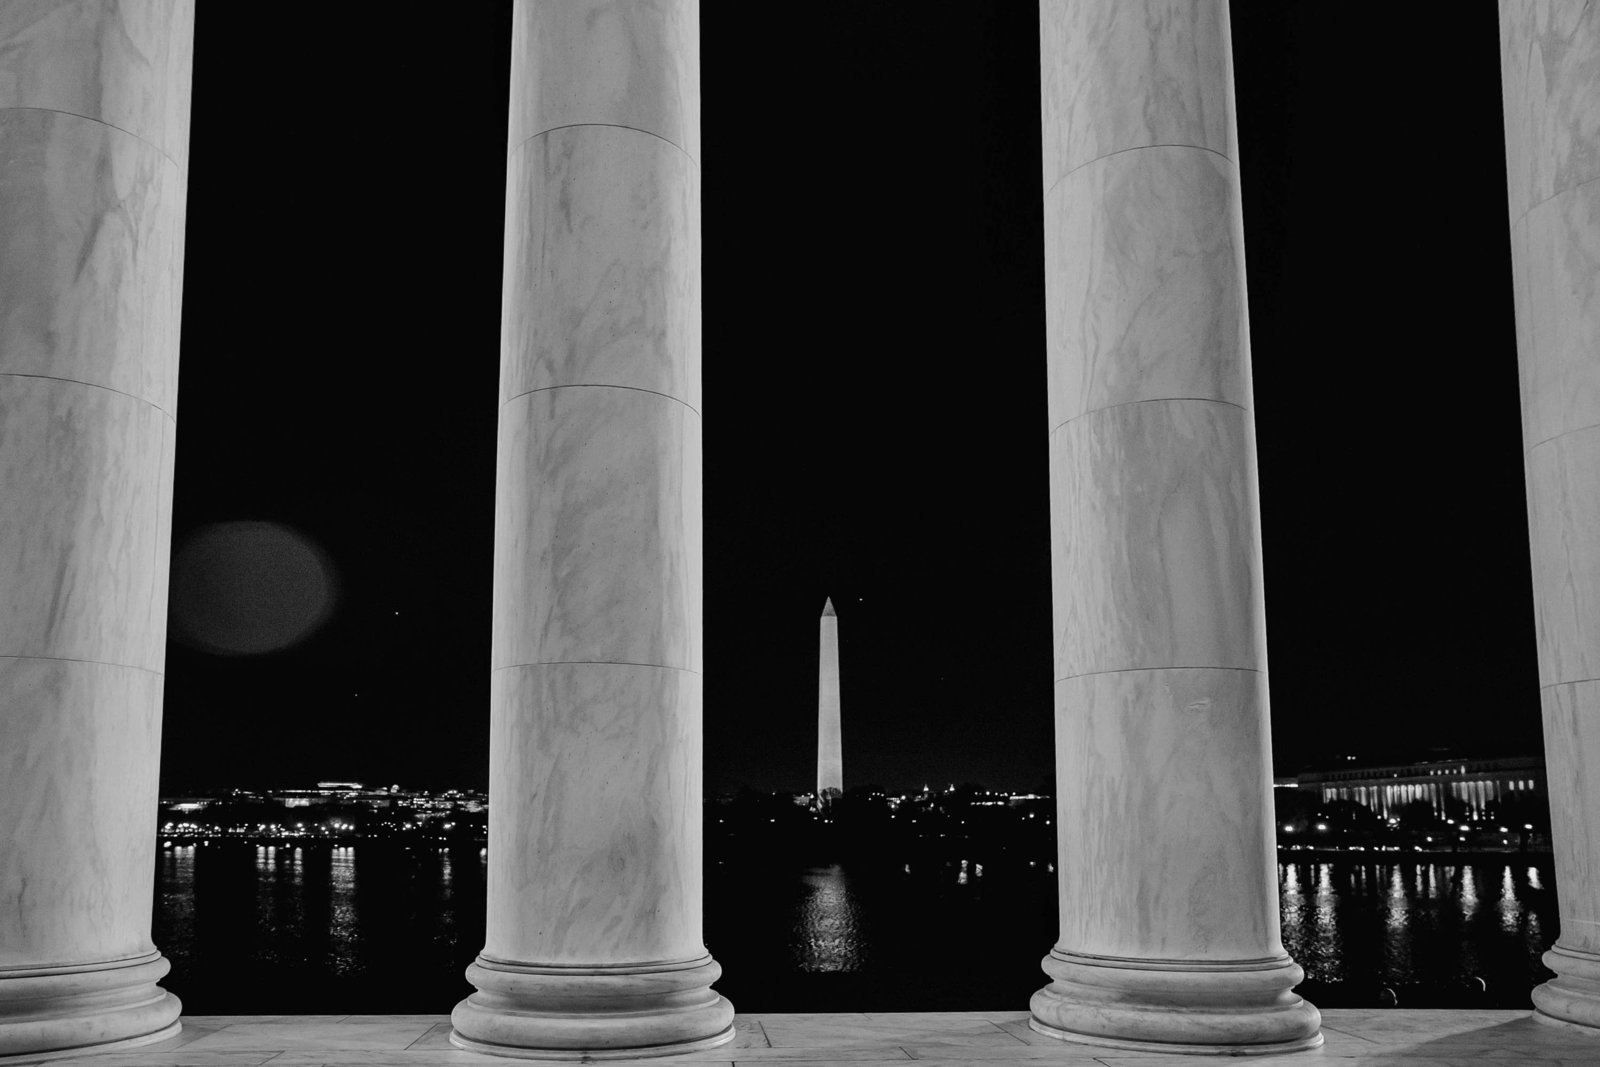 monument-jefferson-memorial-night-washington-dc-kate-timbers-photography-1234